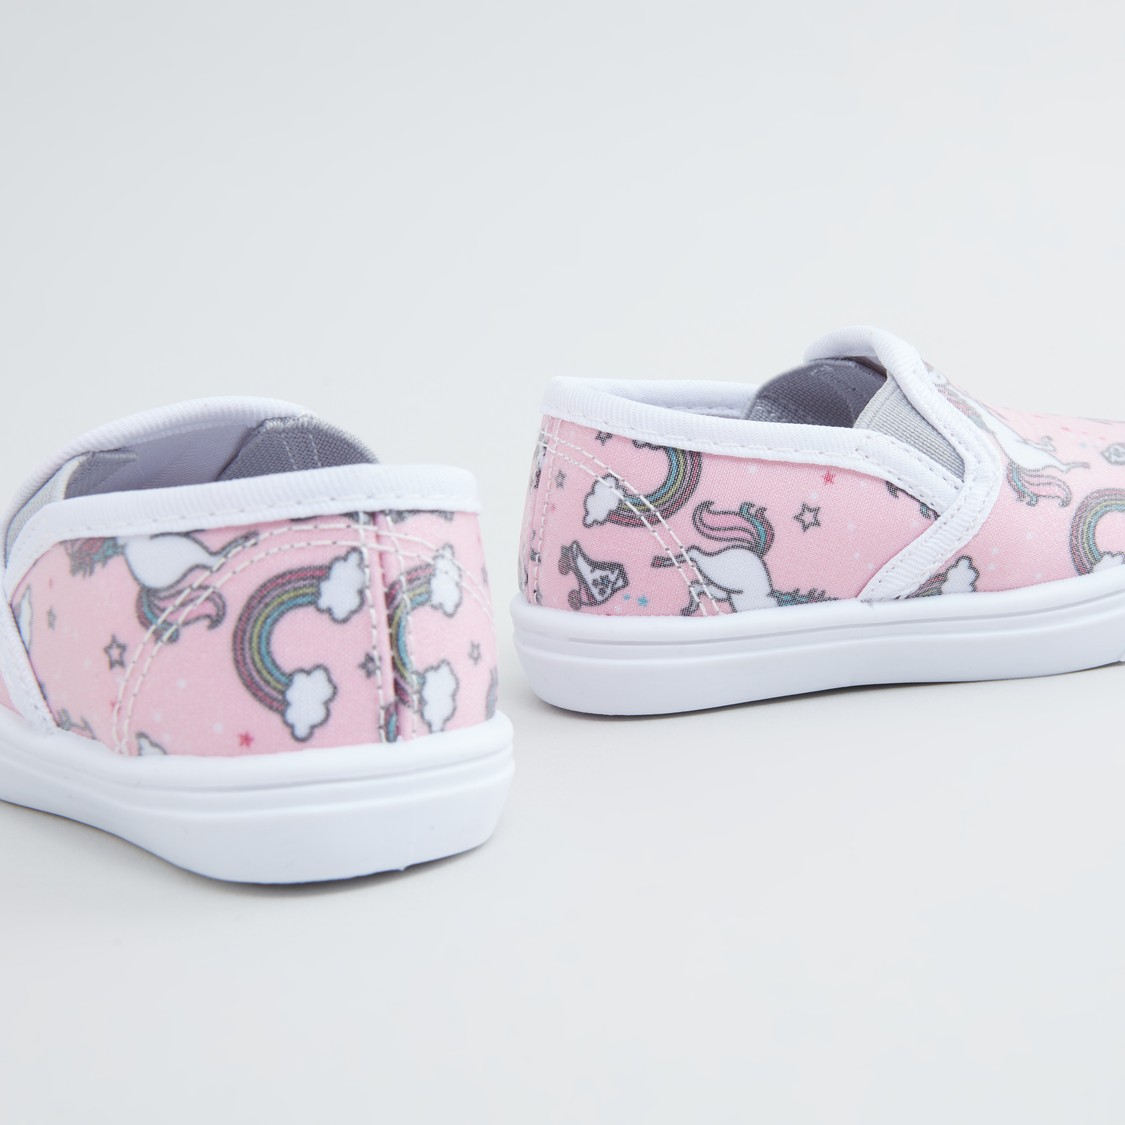 Unicorn Printed Slip-On Shoes